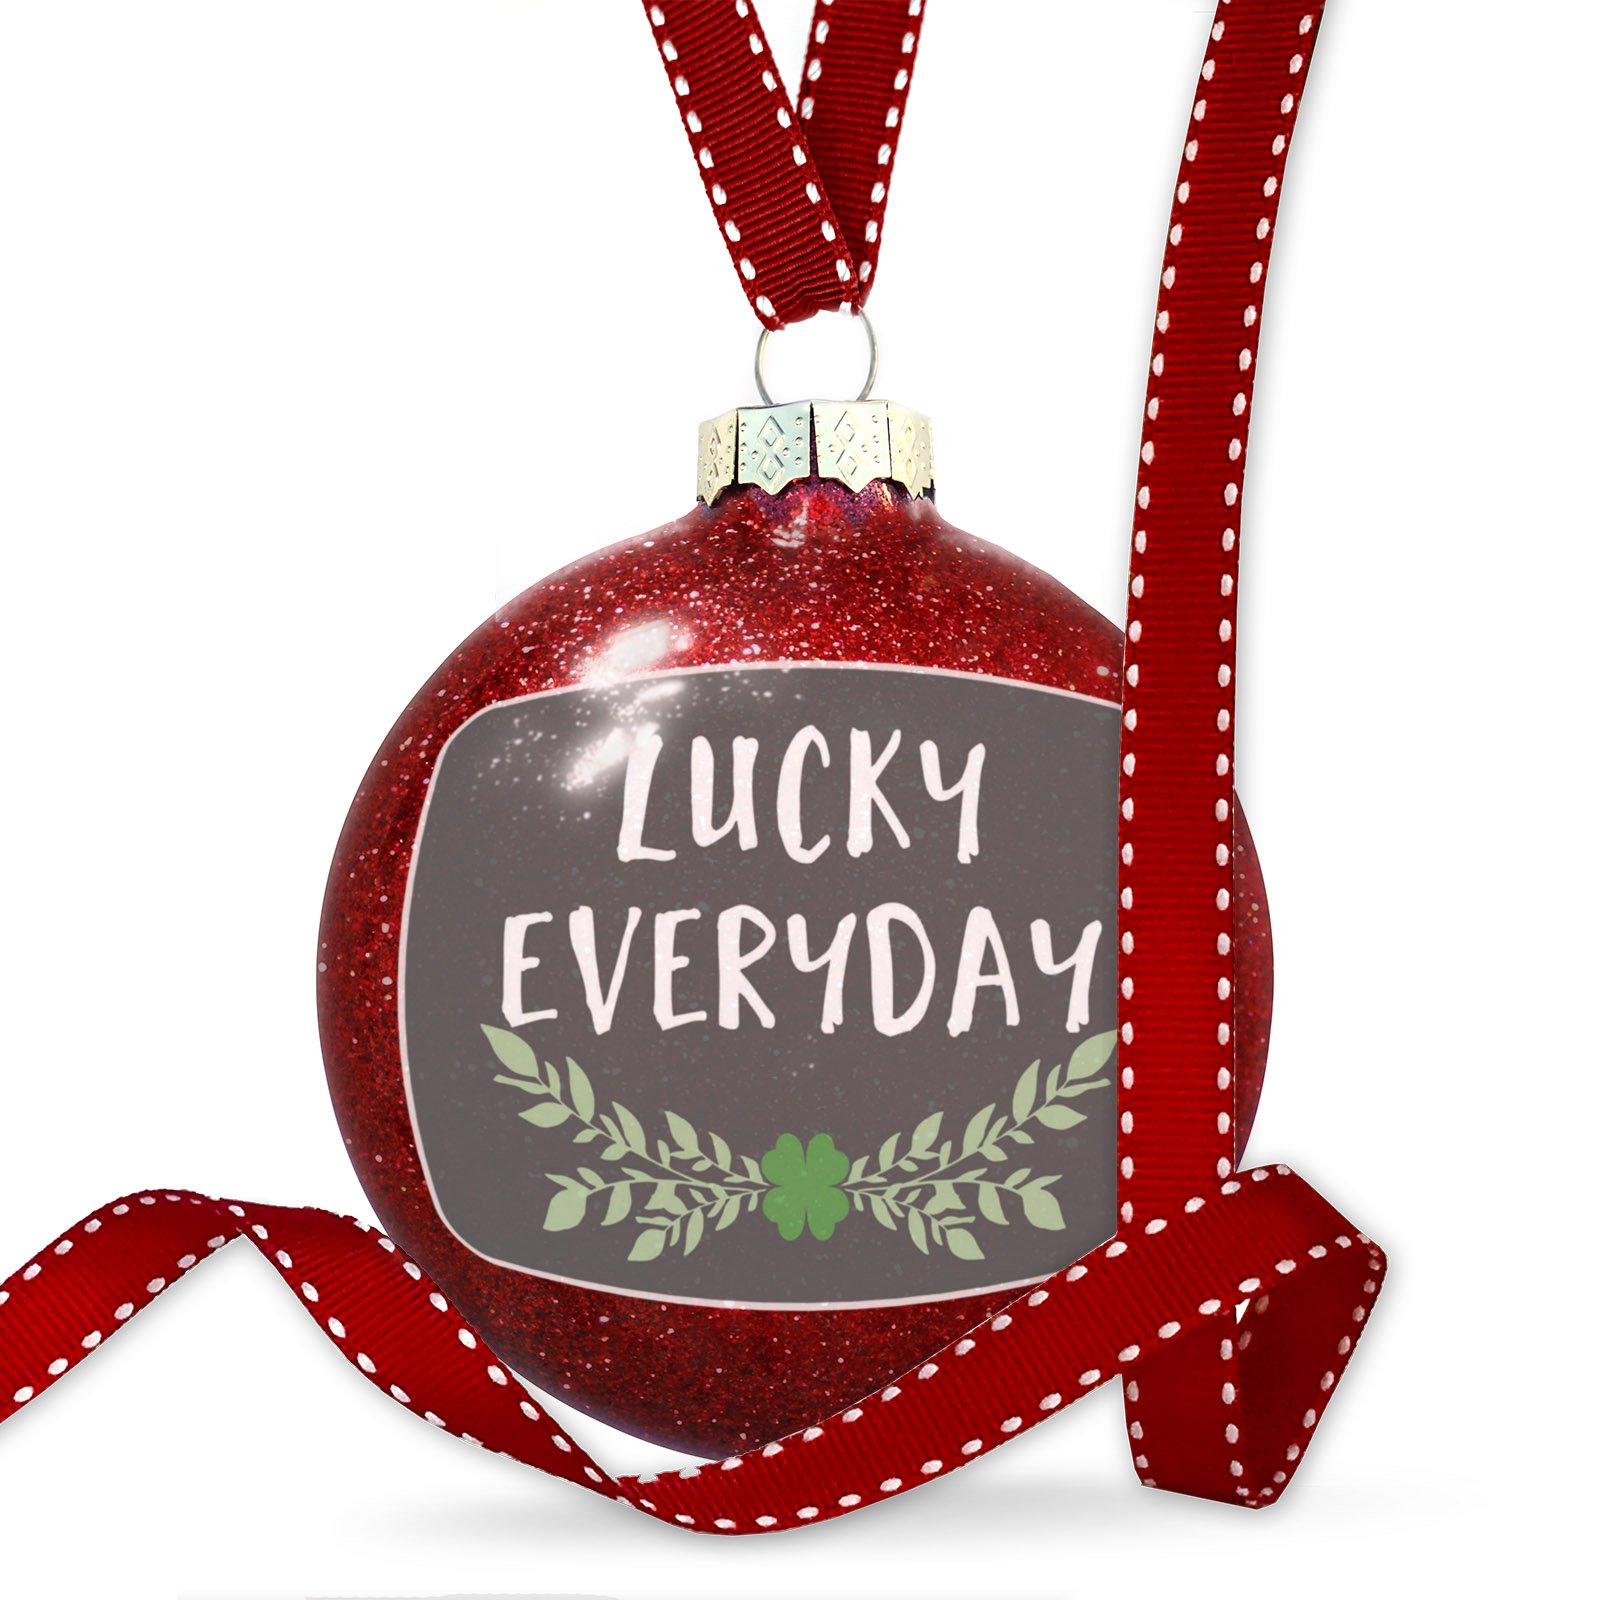 Christmas Decoration Lucky Everyday St. Patrick's Day Green Leaves with Shamrock Ornament